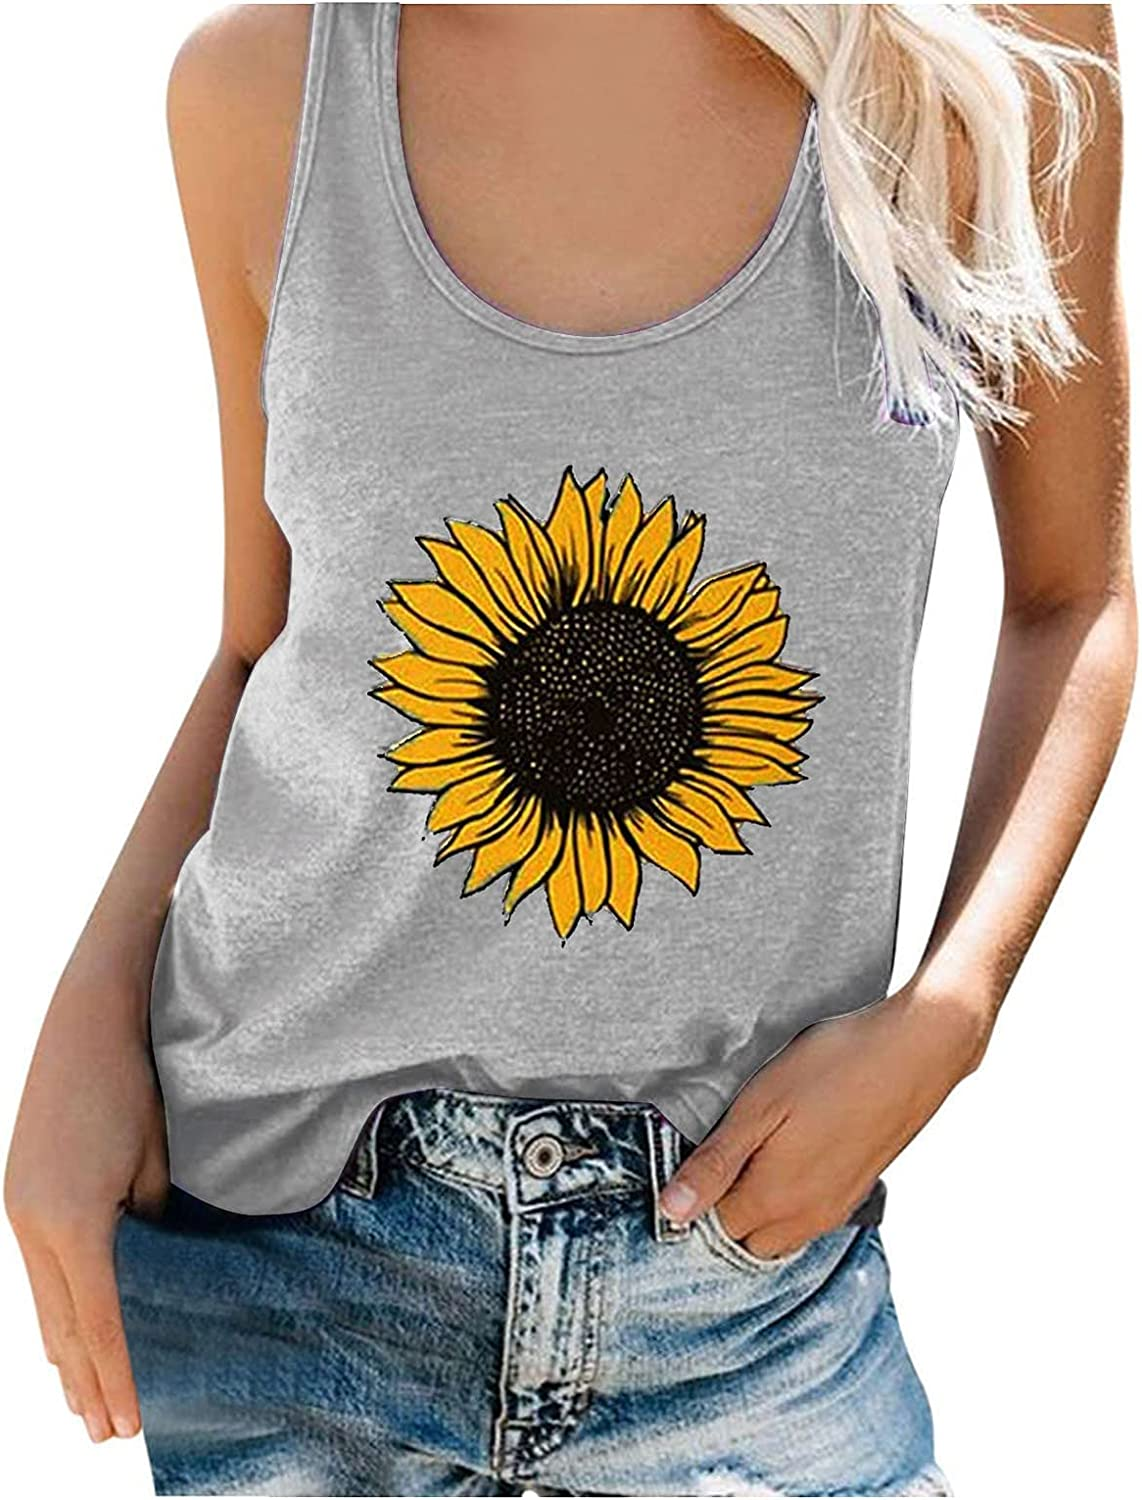 Women Graphic Tank Tops Loose Fit Sleeveless Casual Summer Tops Workout Tee Shirts Funny Sunflower Printed T Shirt